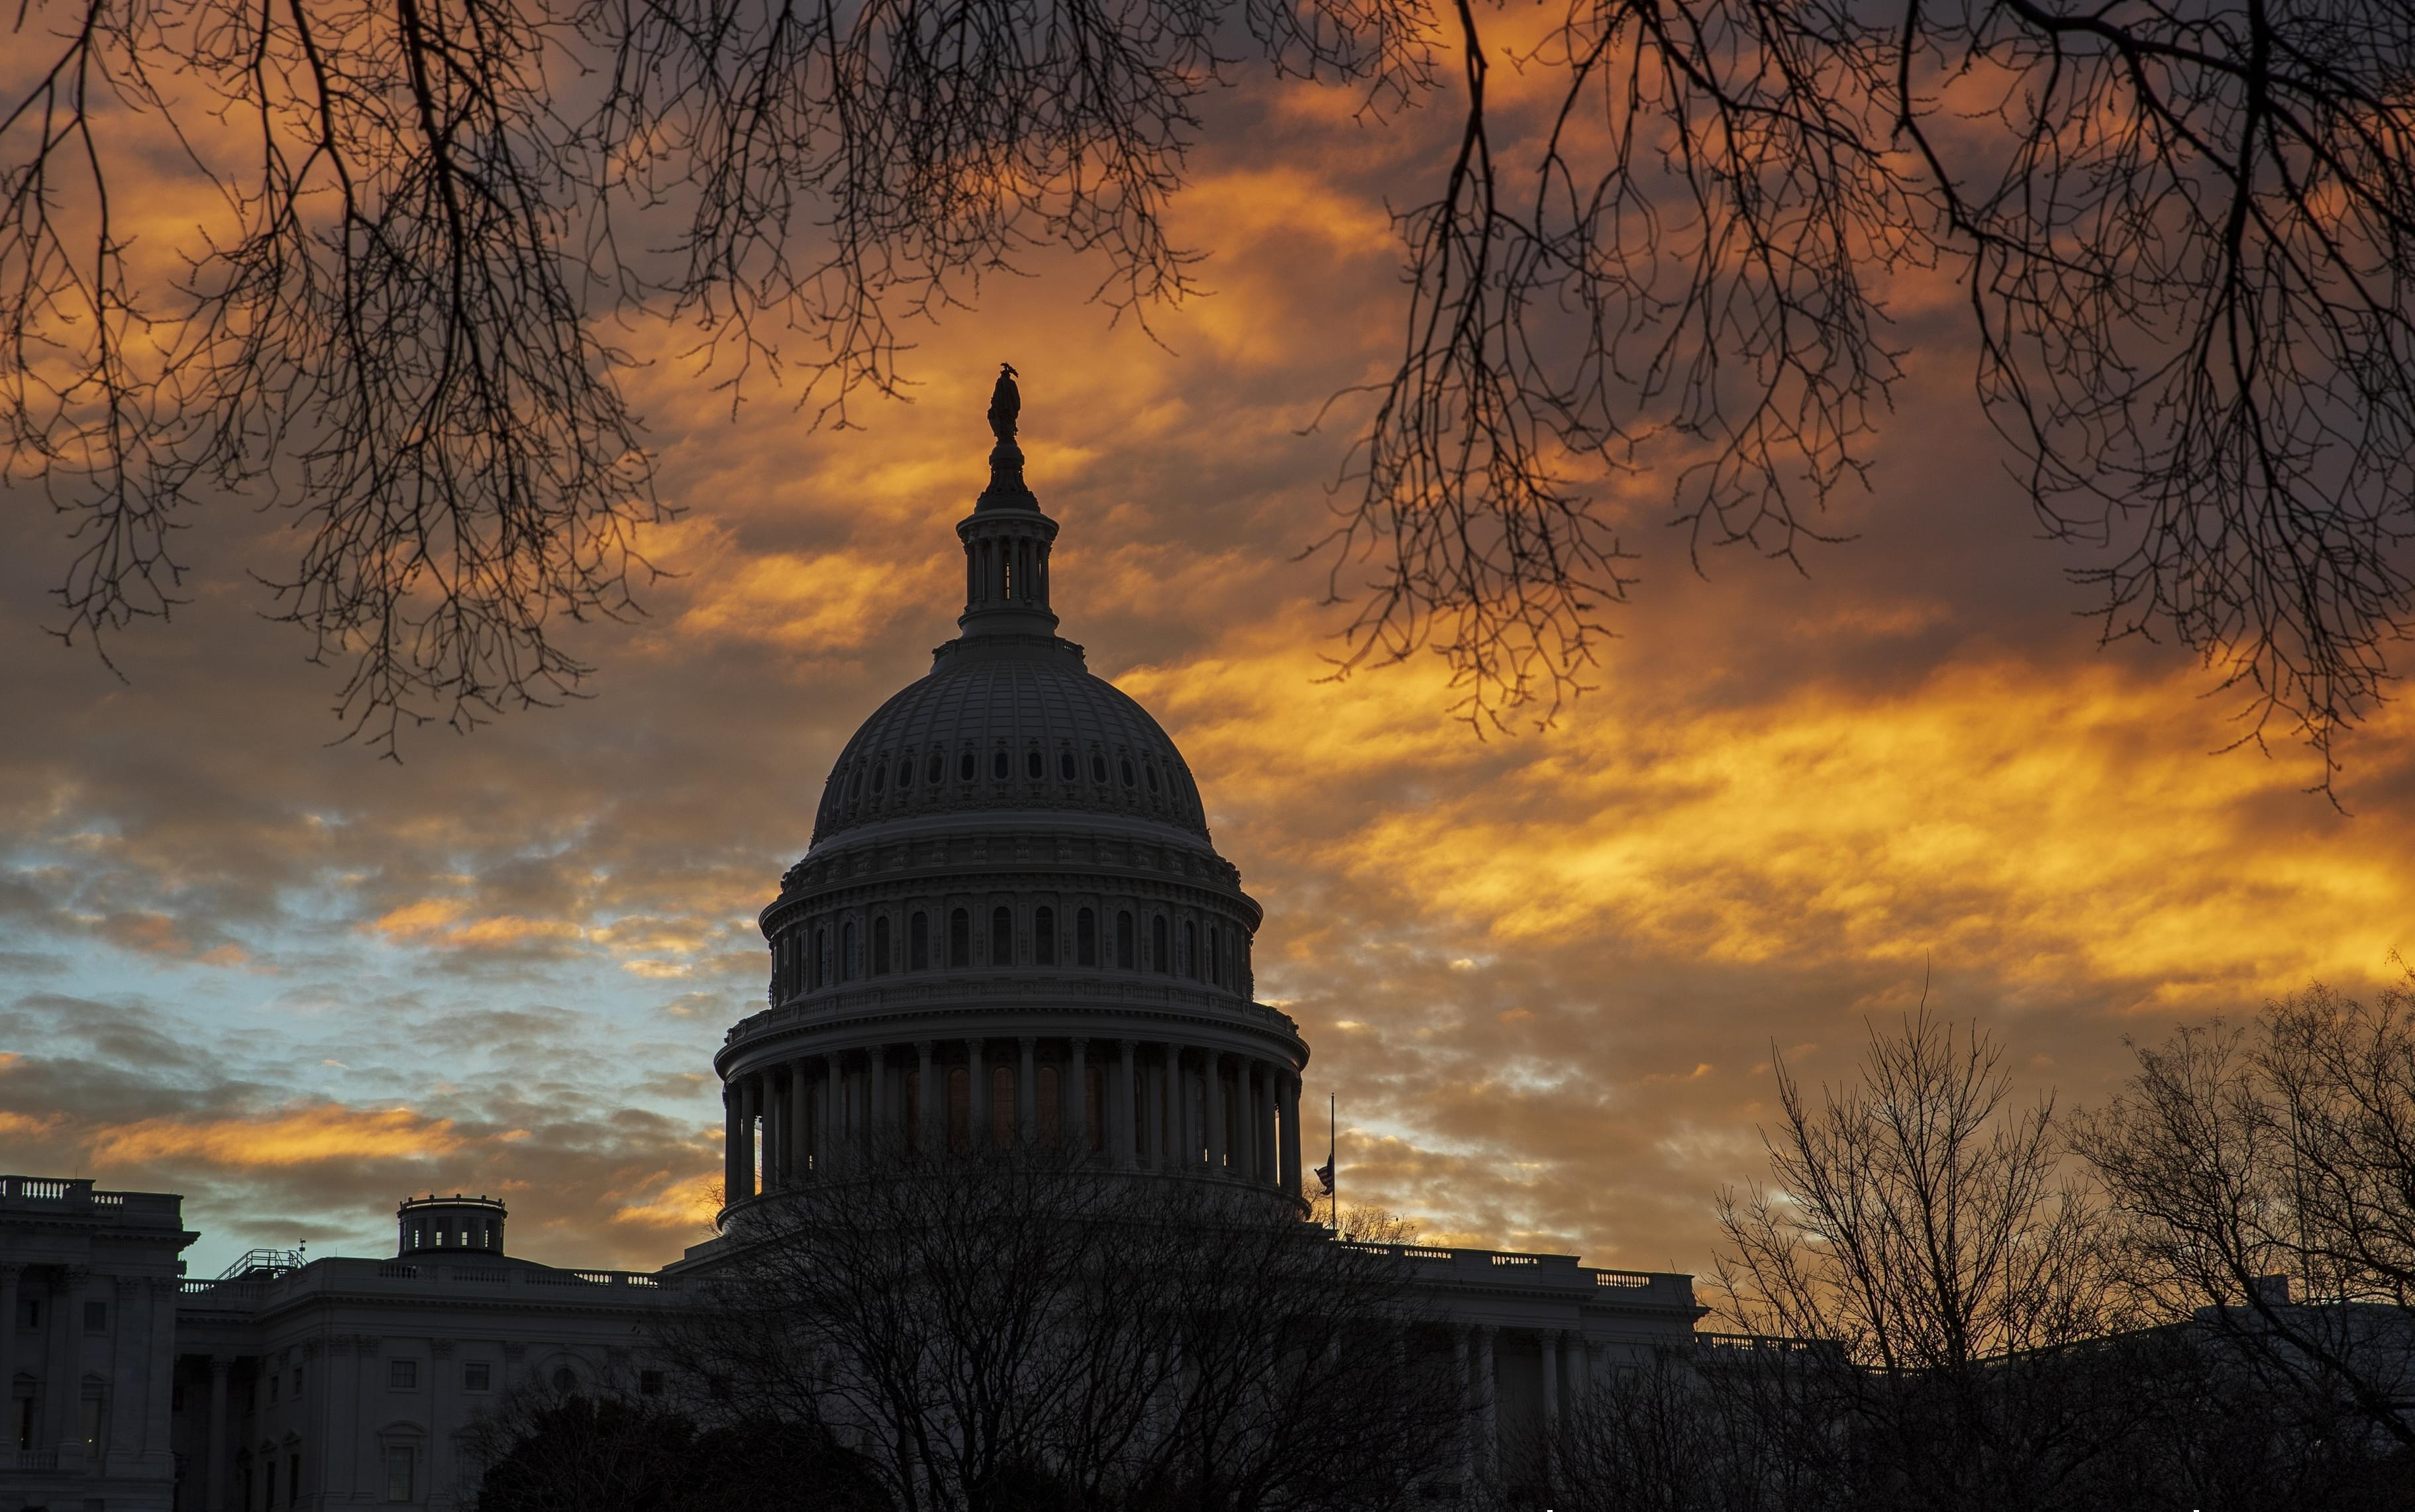 The U.S. Capitol on Saturday morning, the first day of a partial government shutdown.